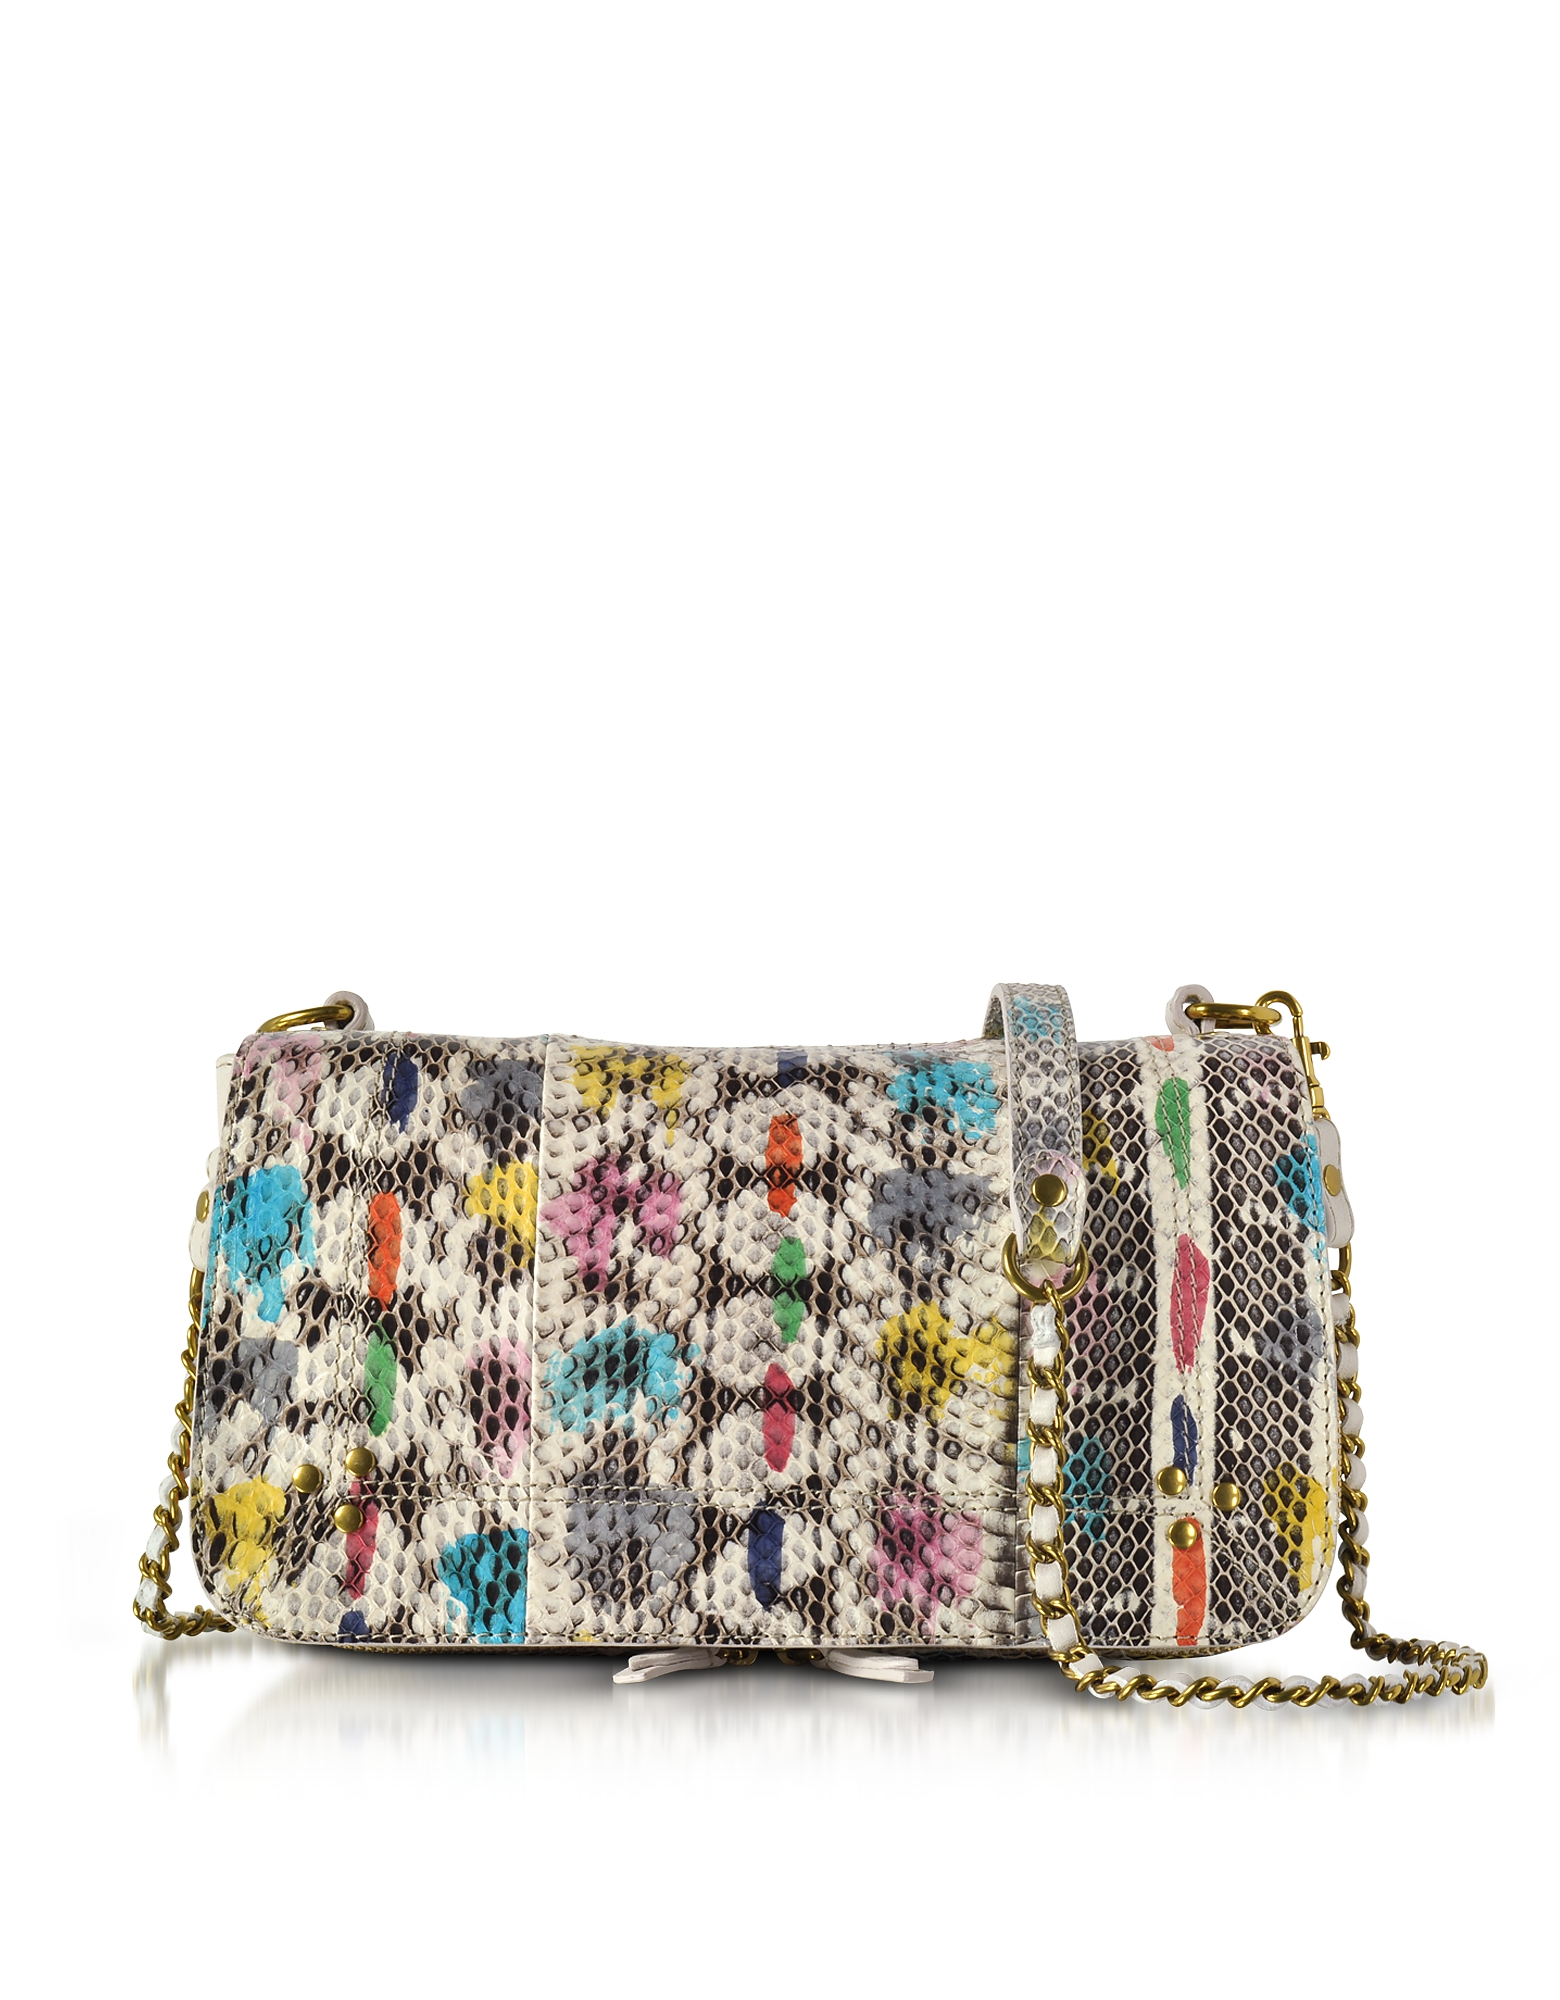 Jerome Dreyfuss Handbags, Bobi Vassily Printed Snakeskin Shoulder Bag